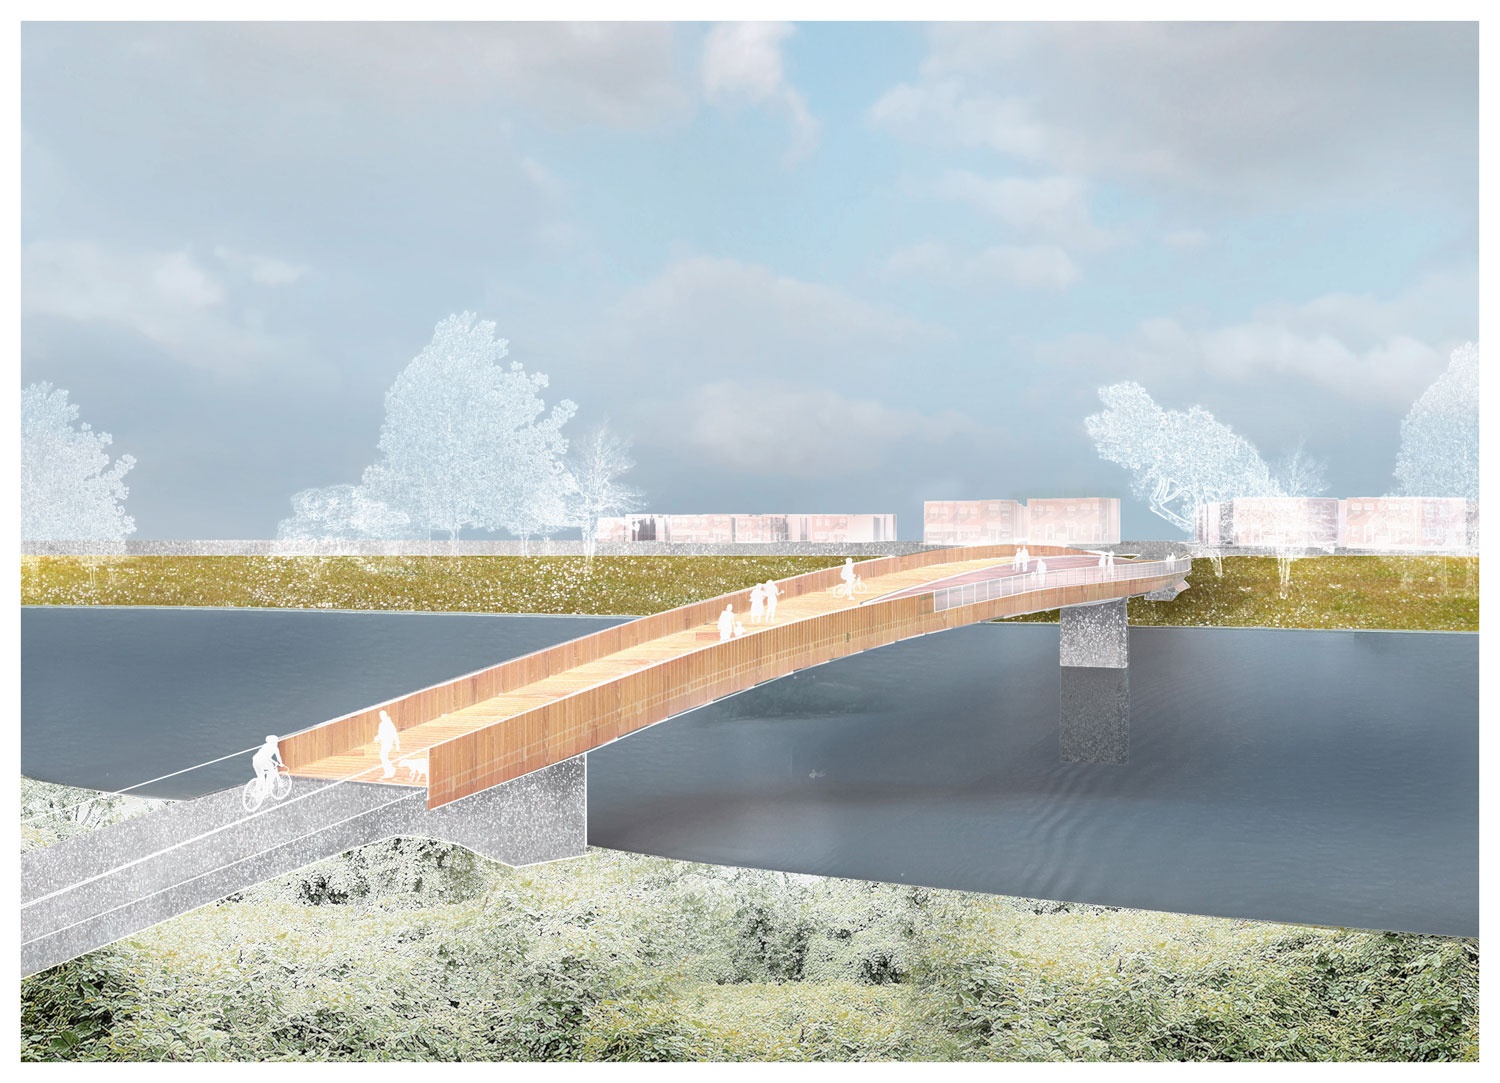 The proposed bridge from River Terrace to Kingman Island. (Courtesy: OMA/Events DC)